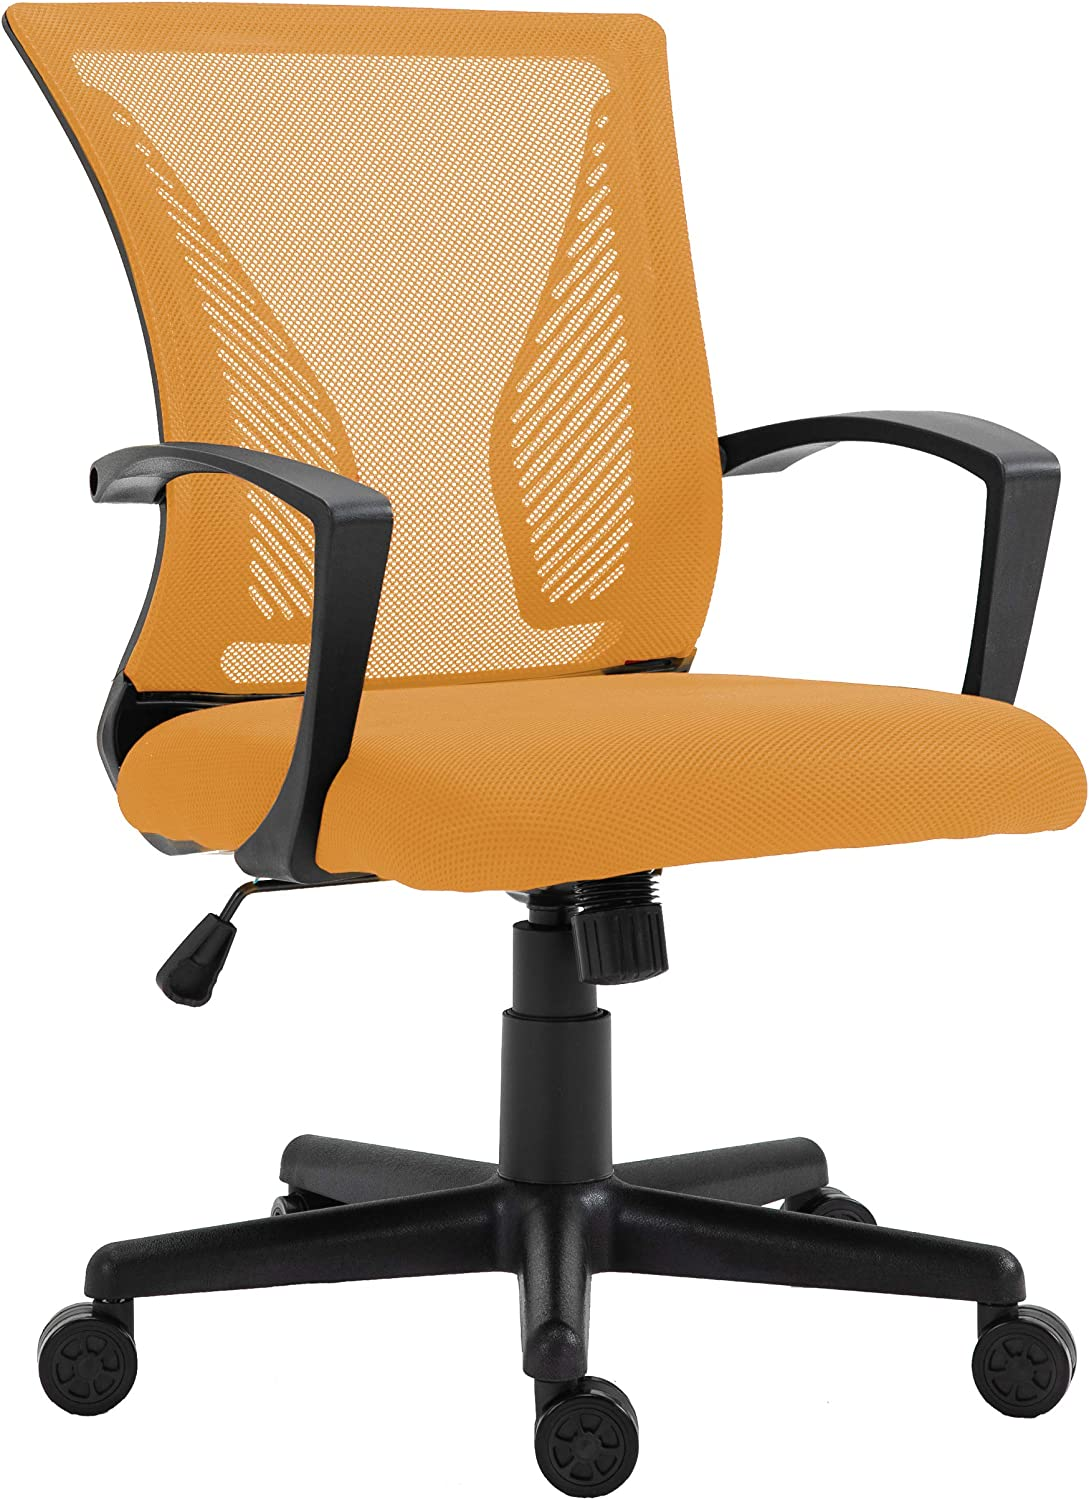 HALTER Desk Chair - Orange Gaming Mesh Chair - Adjustable and Comfortable Ergonomic Chair with Armrests and Wing Lumbar Support - Ideal Gaming or Home Office Chair